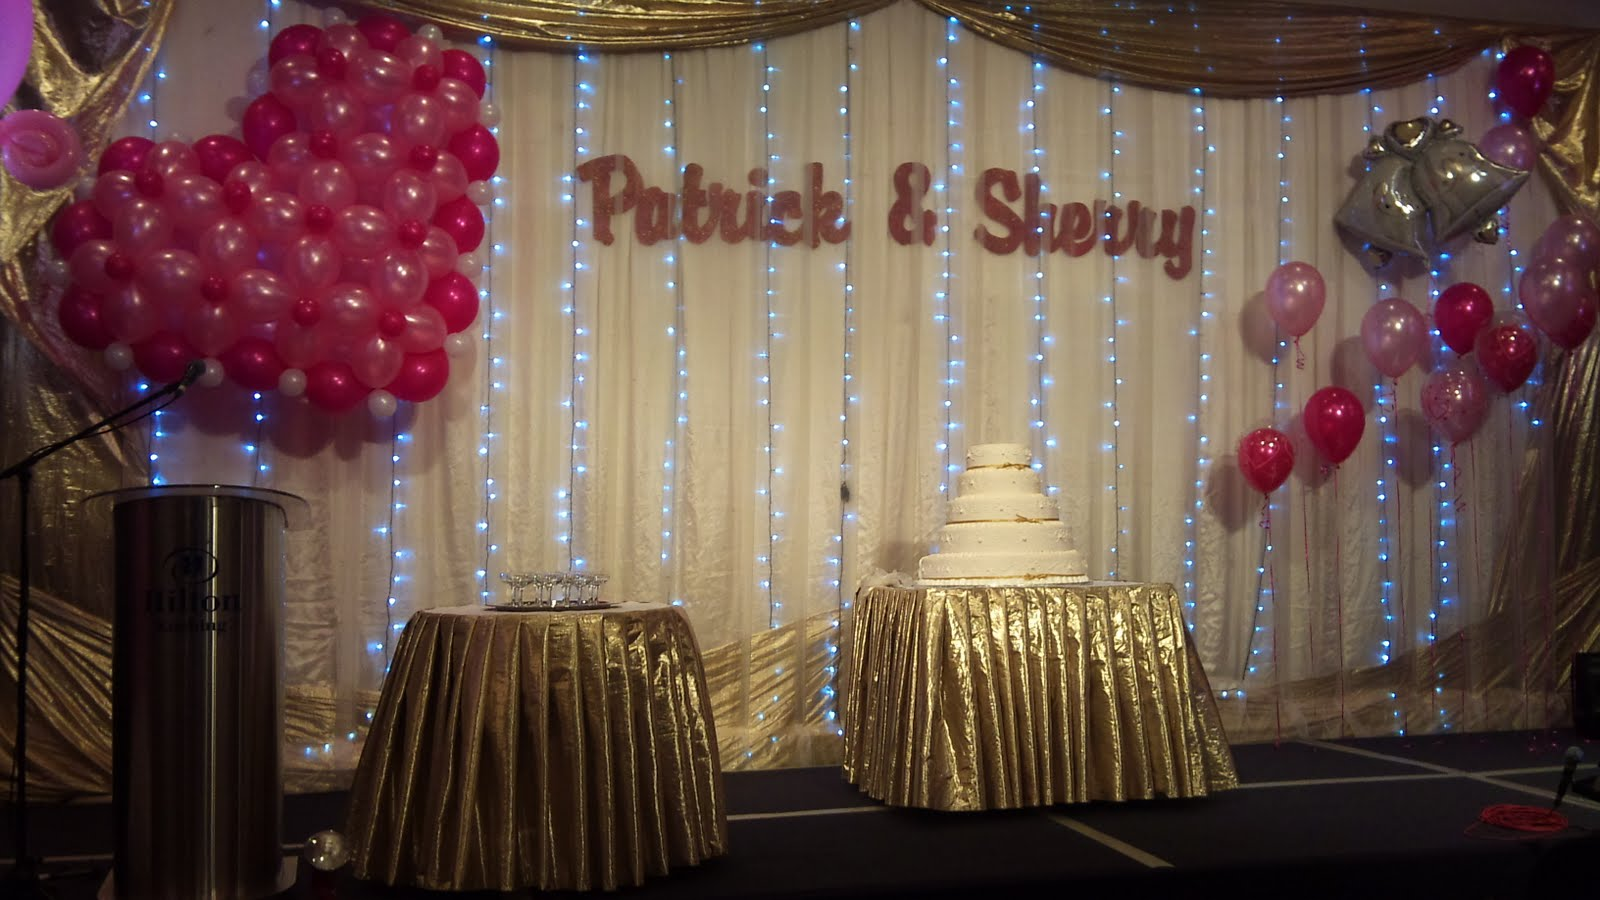 Balloon decorations for weddings birthday parties balloon patrick sherry wedding decoration hilton hotel kch junglespirit Choice Image